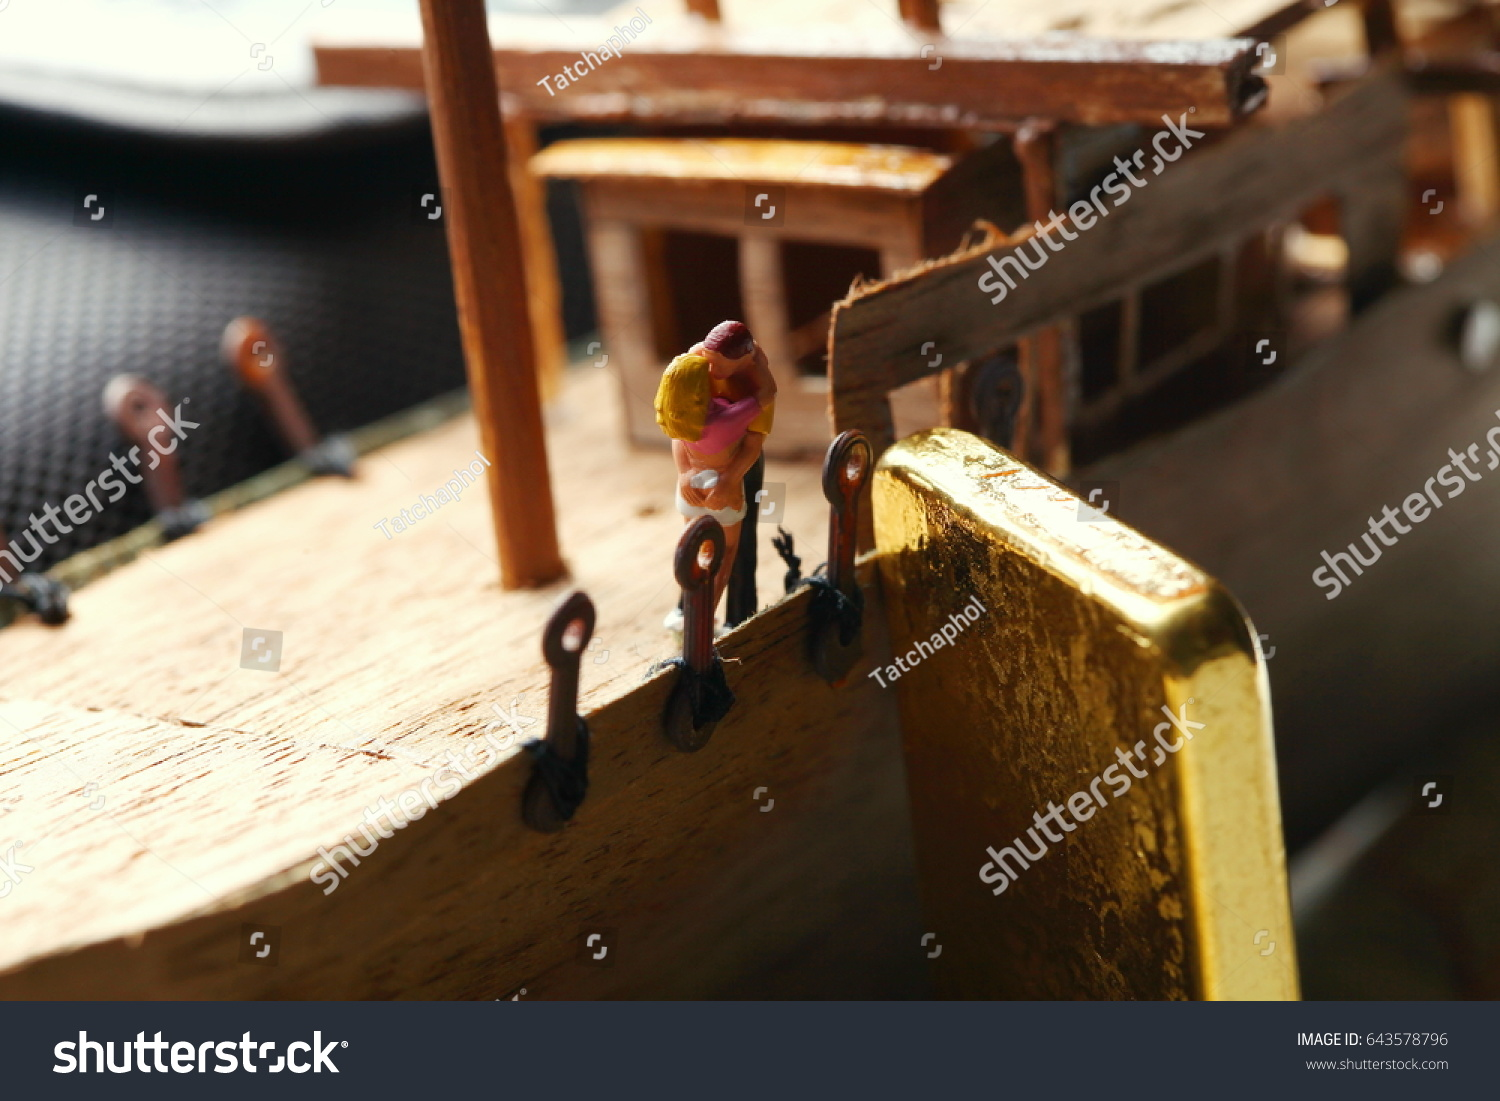 a1a4c9f62e9c Gold bar put beside miniature scratch build junk ship wooden model.